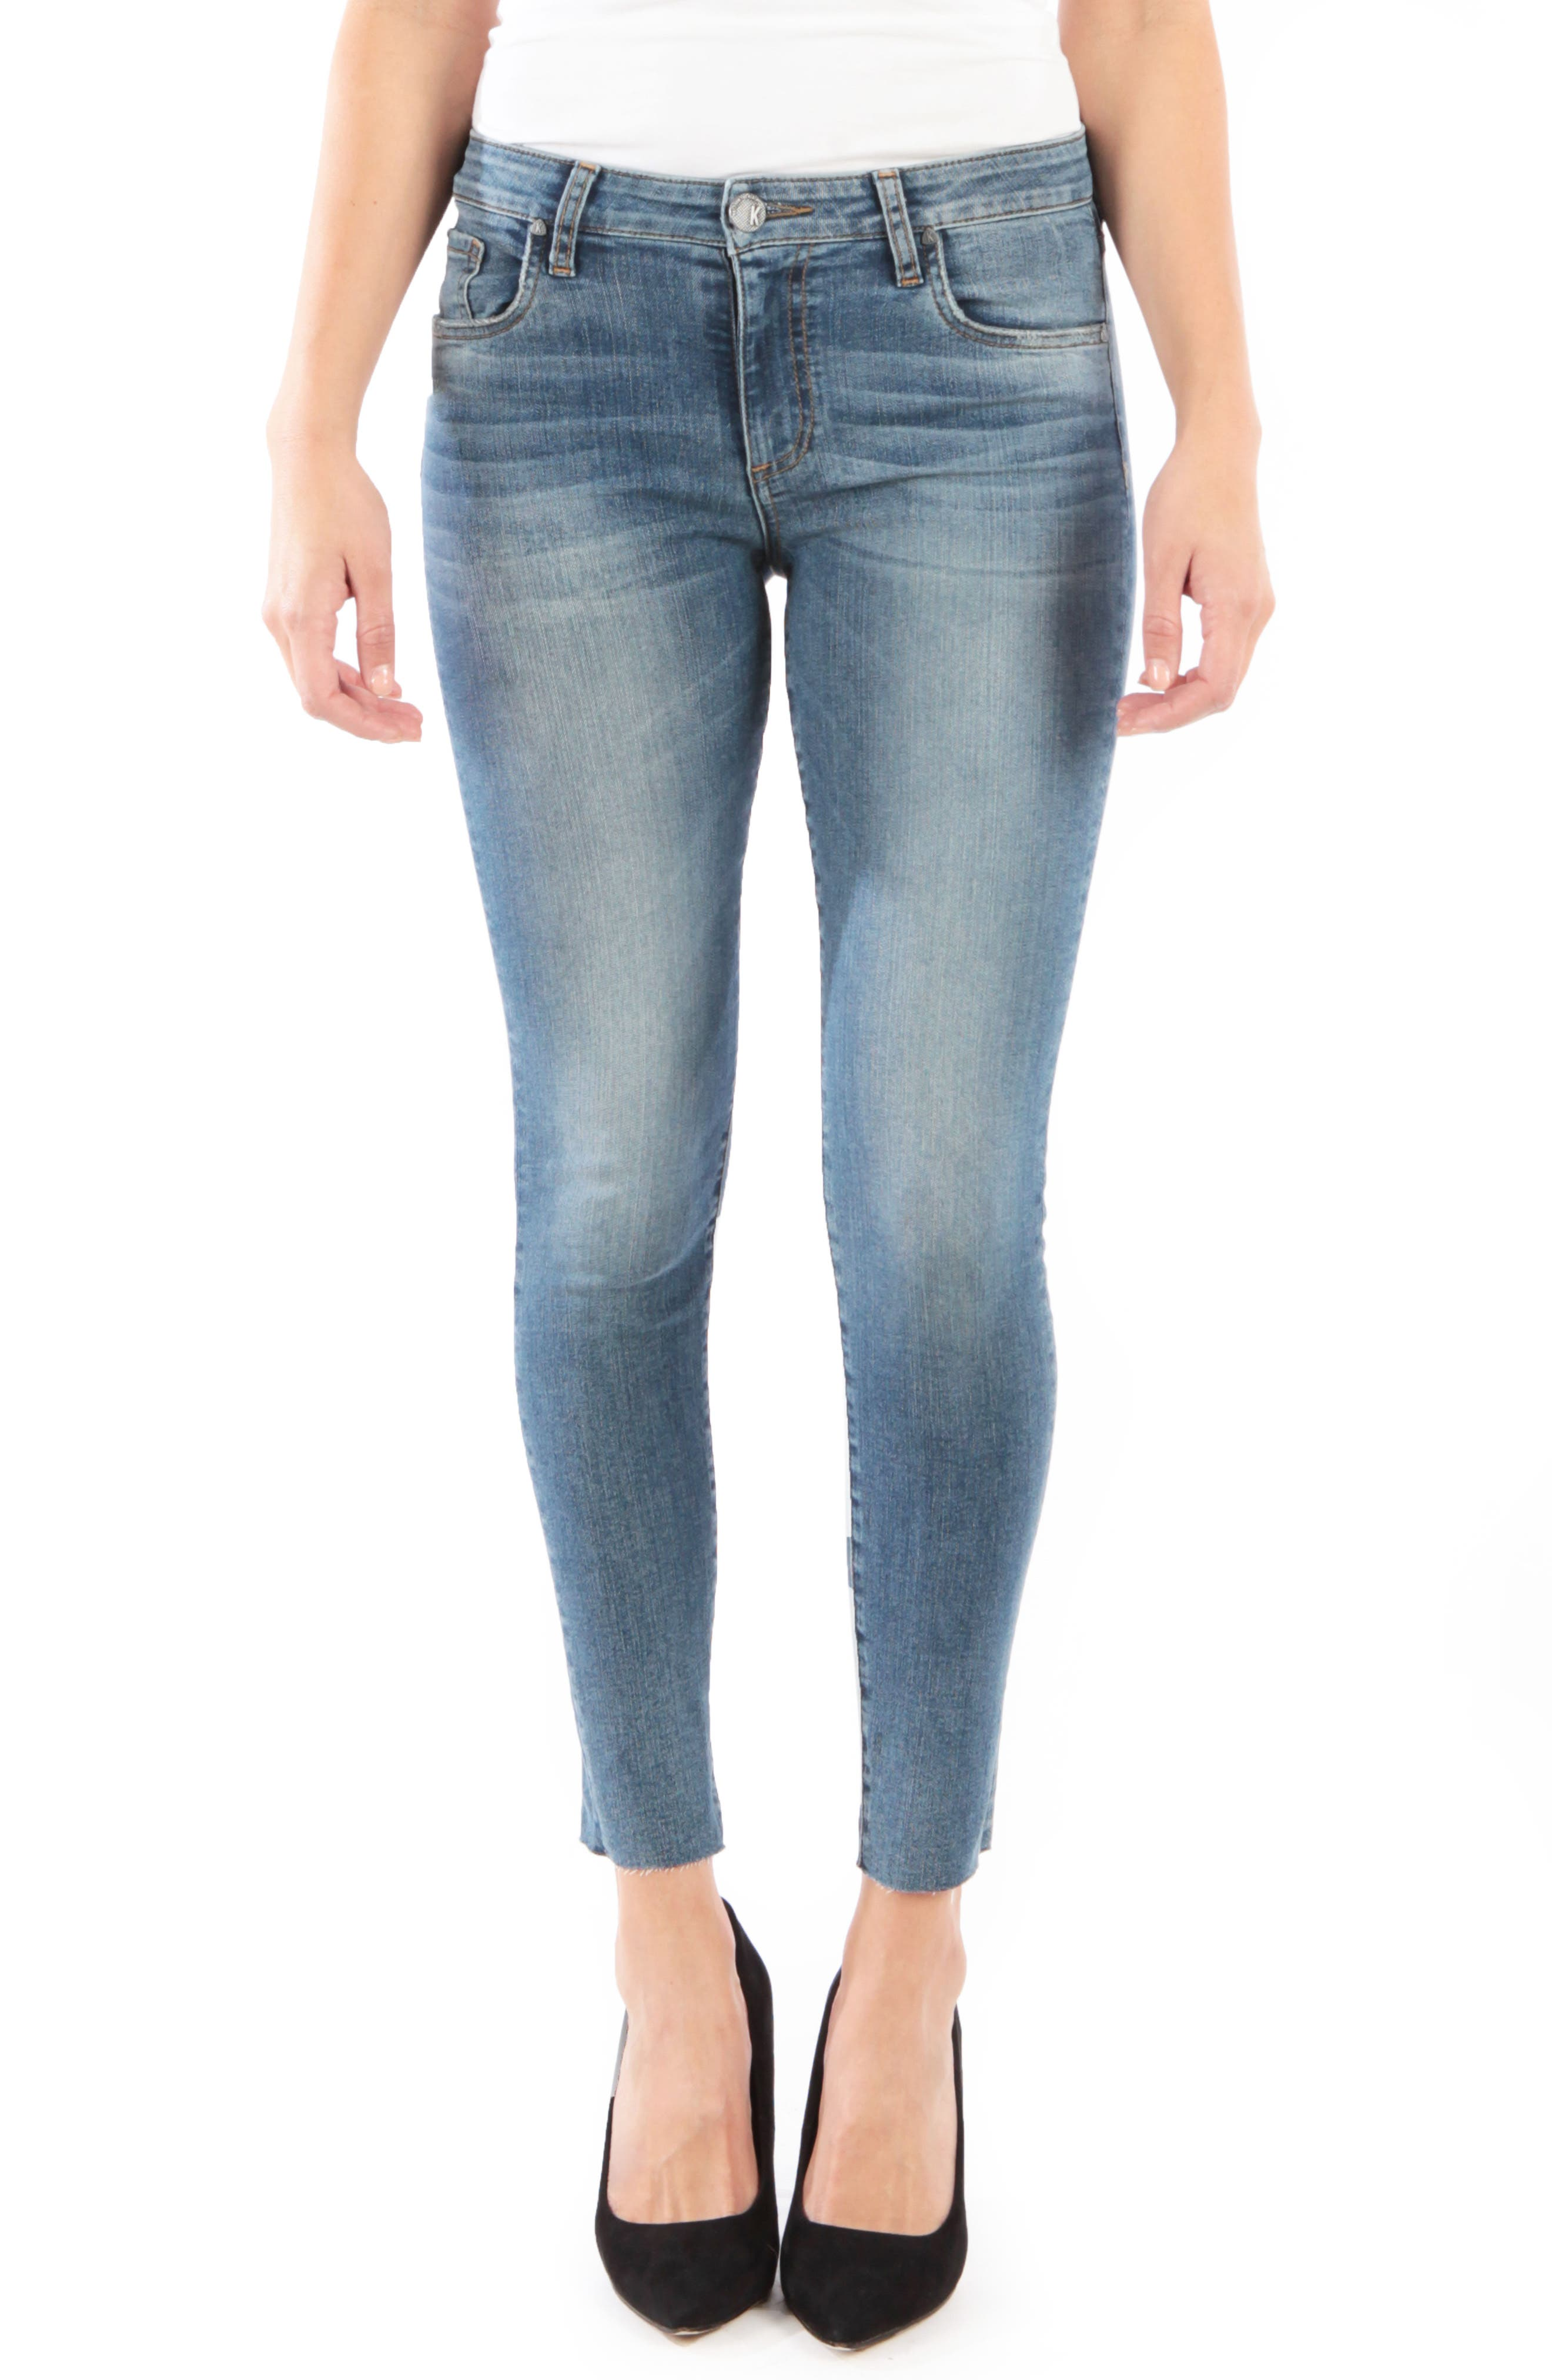 KUT FROM THE KLOTH Donna High Waist Raw Hem Skinny Jeans, Main, color, PHILOSOPHICAL